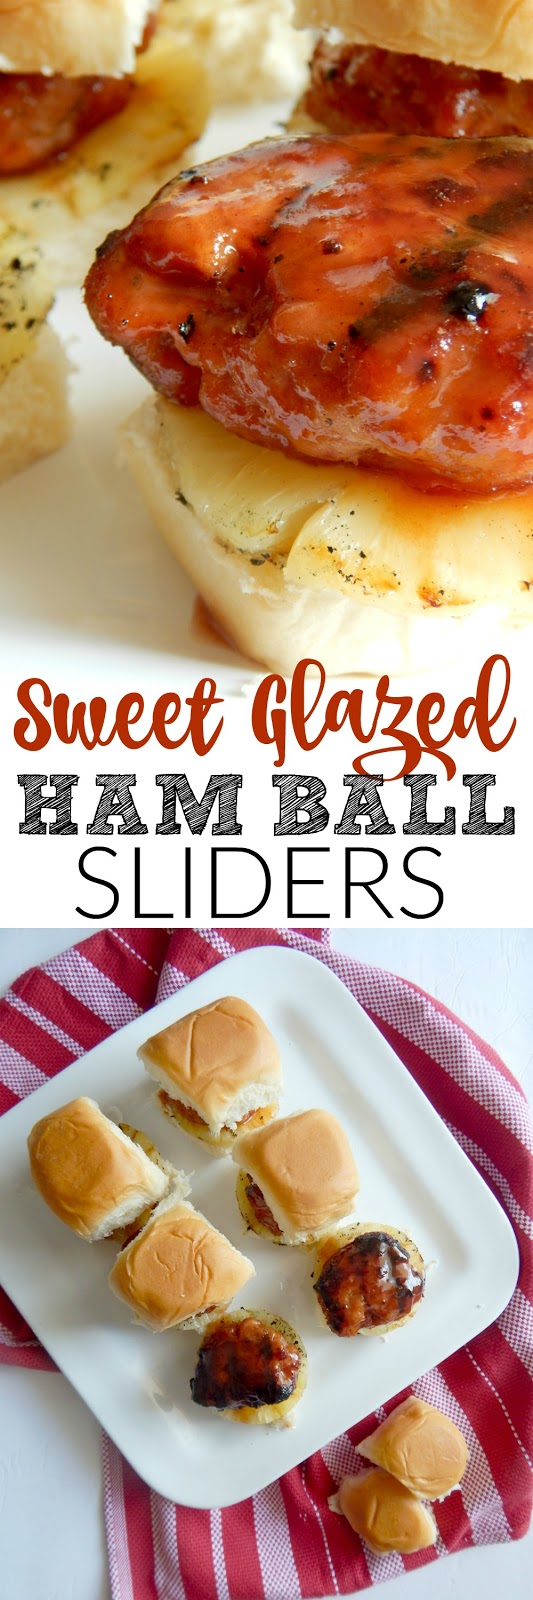 sweet glazed ham ball sliders